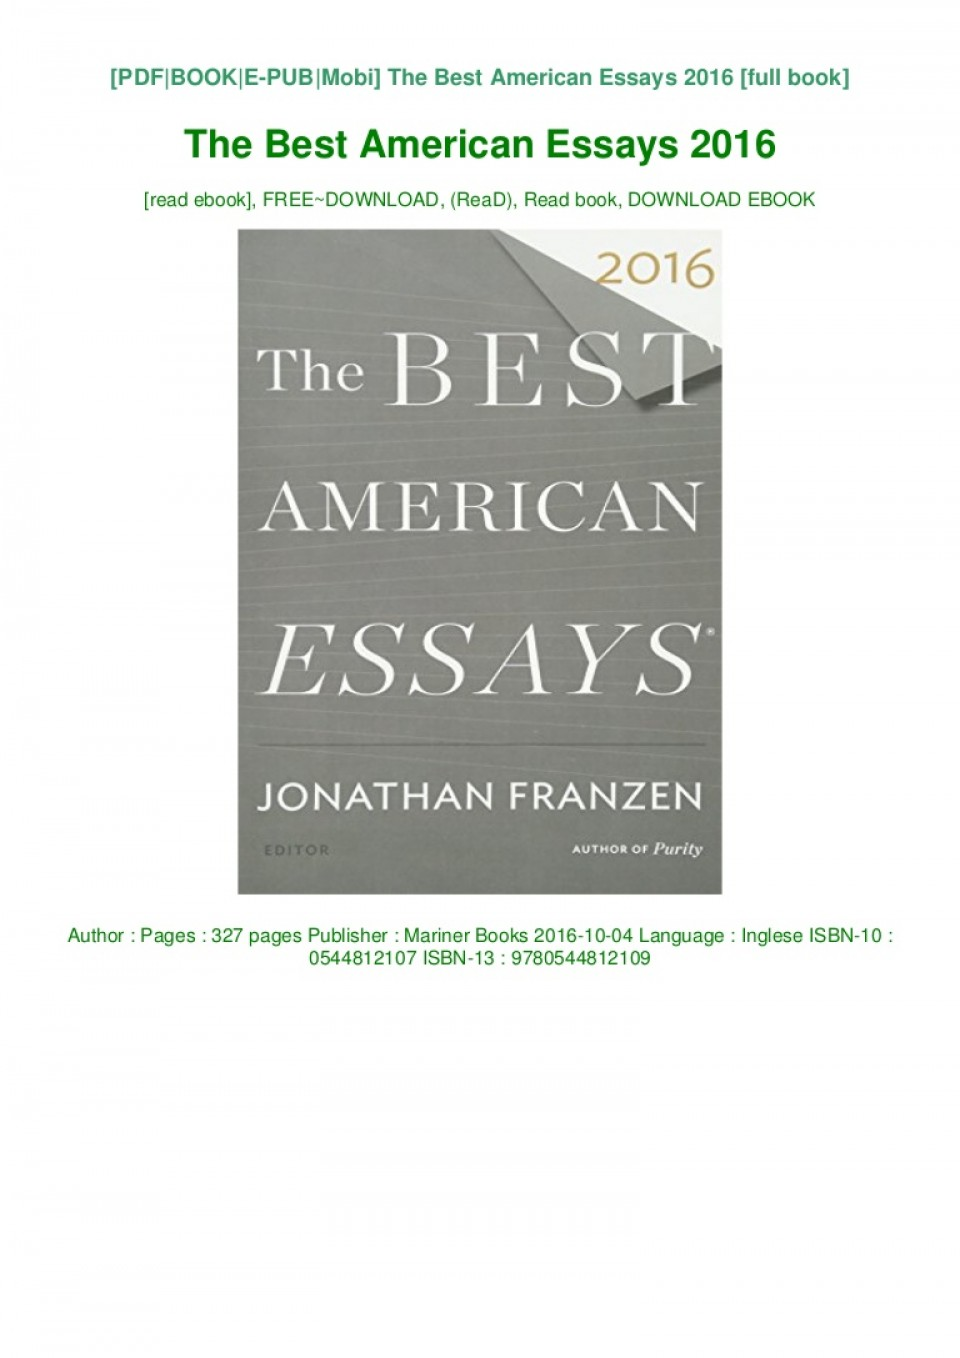 004 The Best American Essays Download Pdf Epub Audiobook Ebook Thumbnail Essay Phenomenal 2016 Sparknotes 960